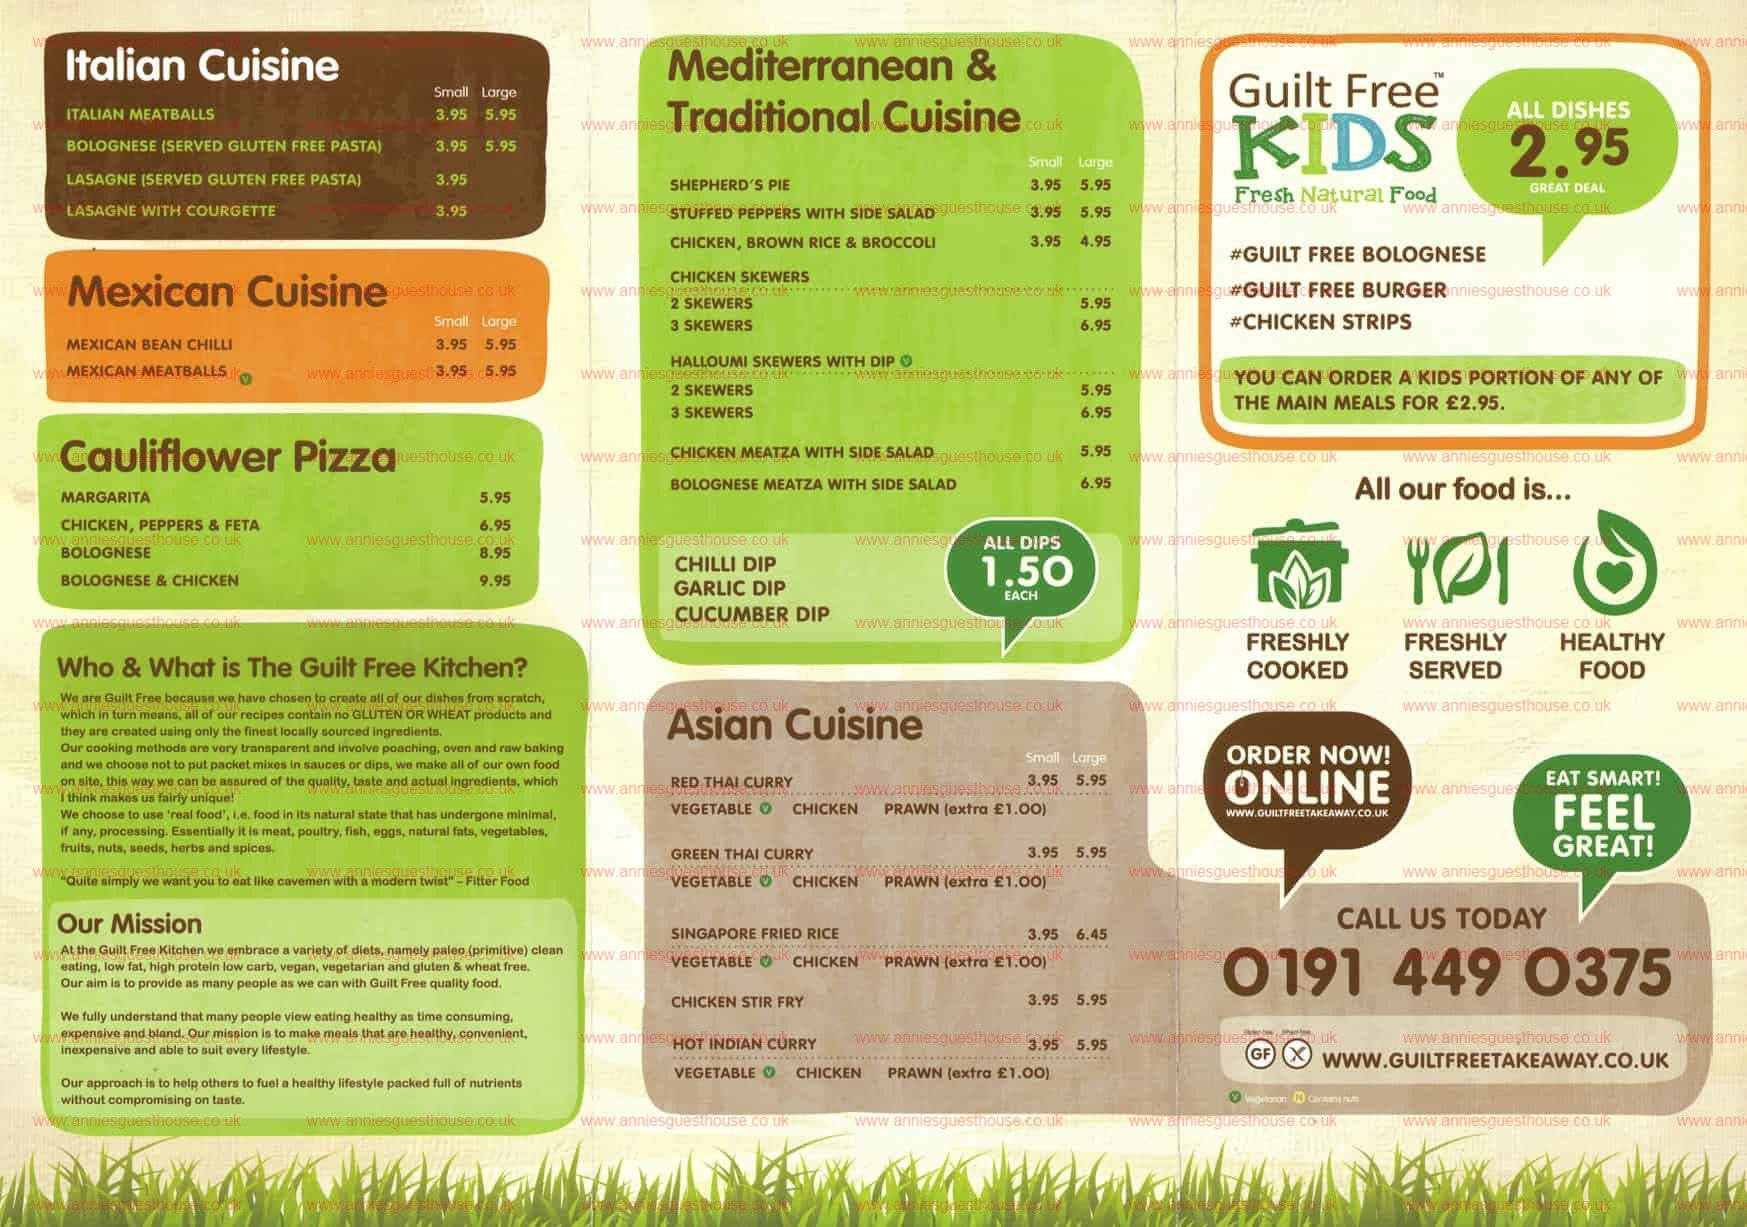 Guilt Free Kitchen & Take-Away Sea Winnings Way Westoe Crown Village South Shields NE33 3PE Menu 2